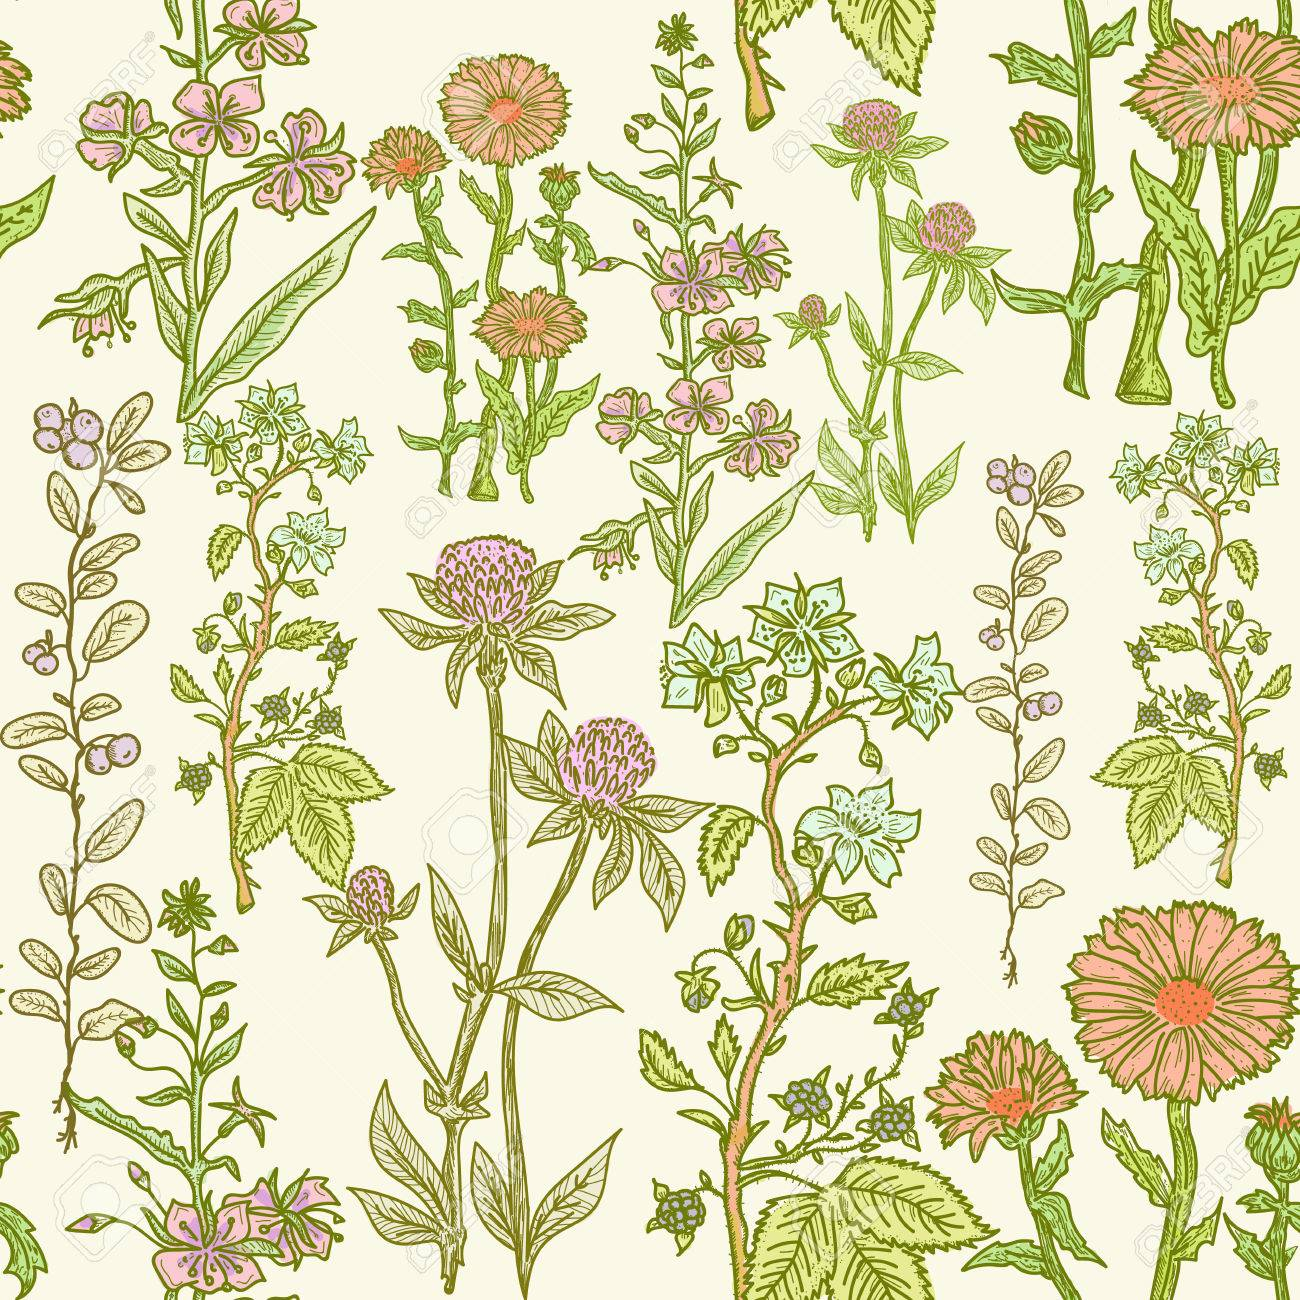 Seamless Vintage Herbal Pattern Medicinal Herbs And Plants Sketch Royalty Free Cliparts Vectors And Stock Illustration Image 69103252